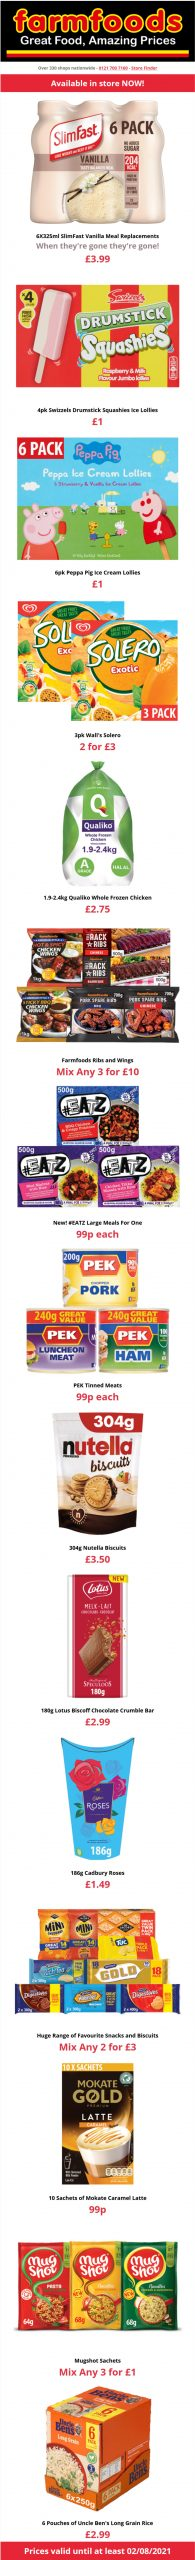 Farmfoods Offers until at least 2nd August 2021 Online Preview